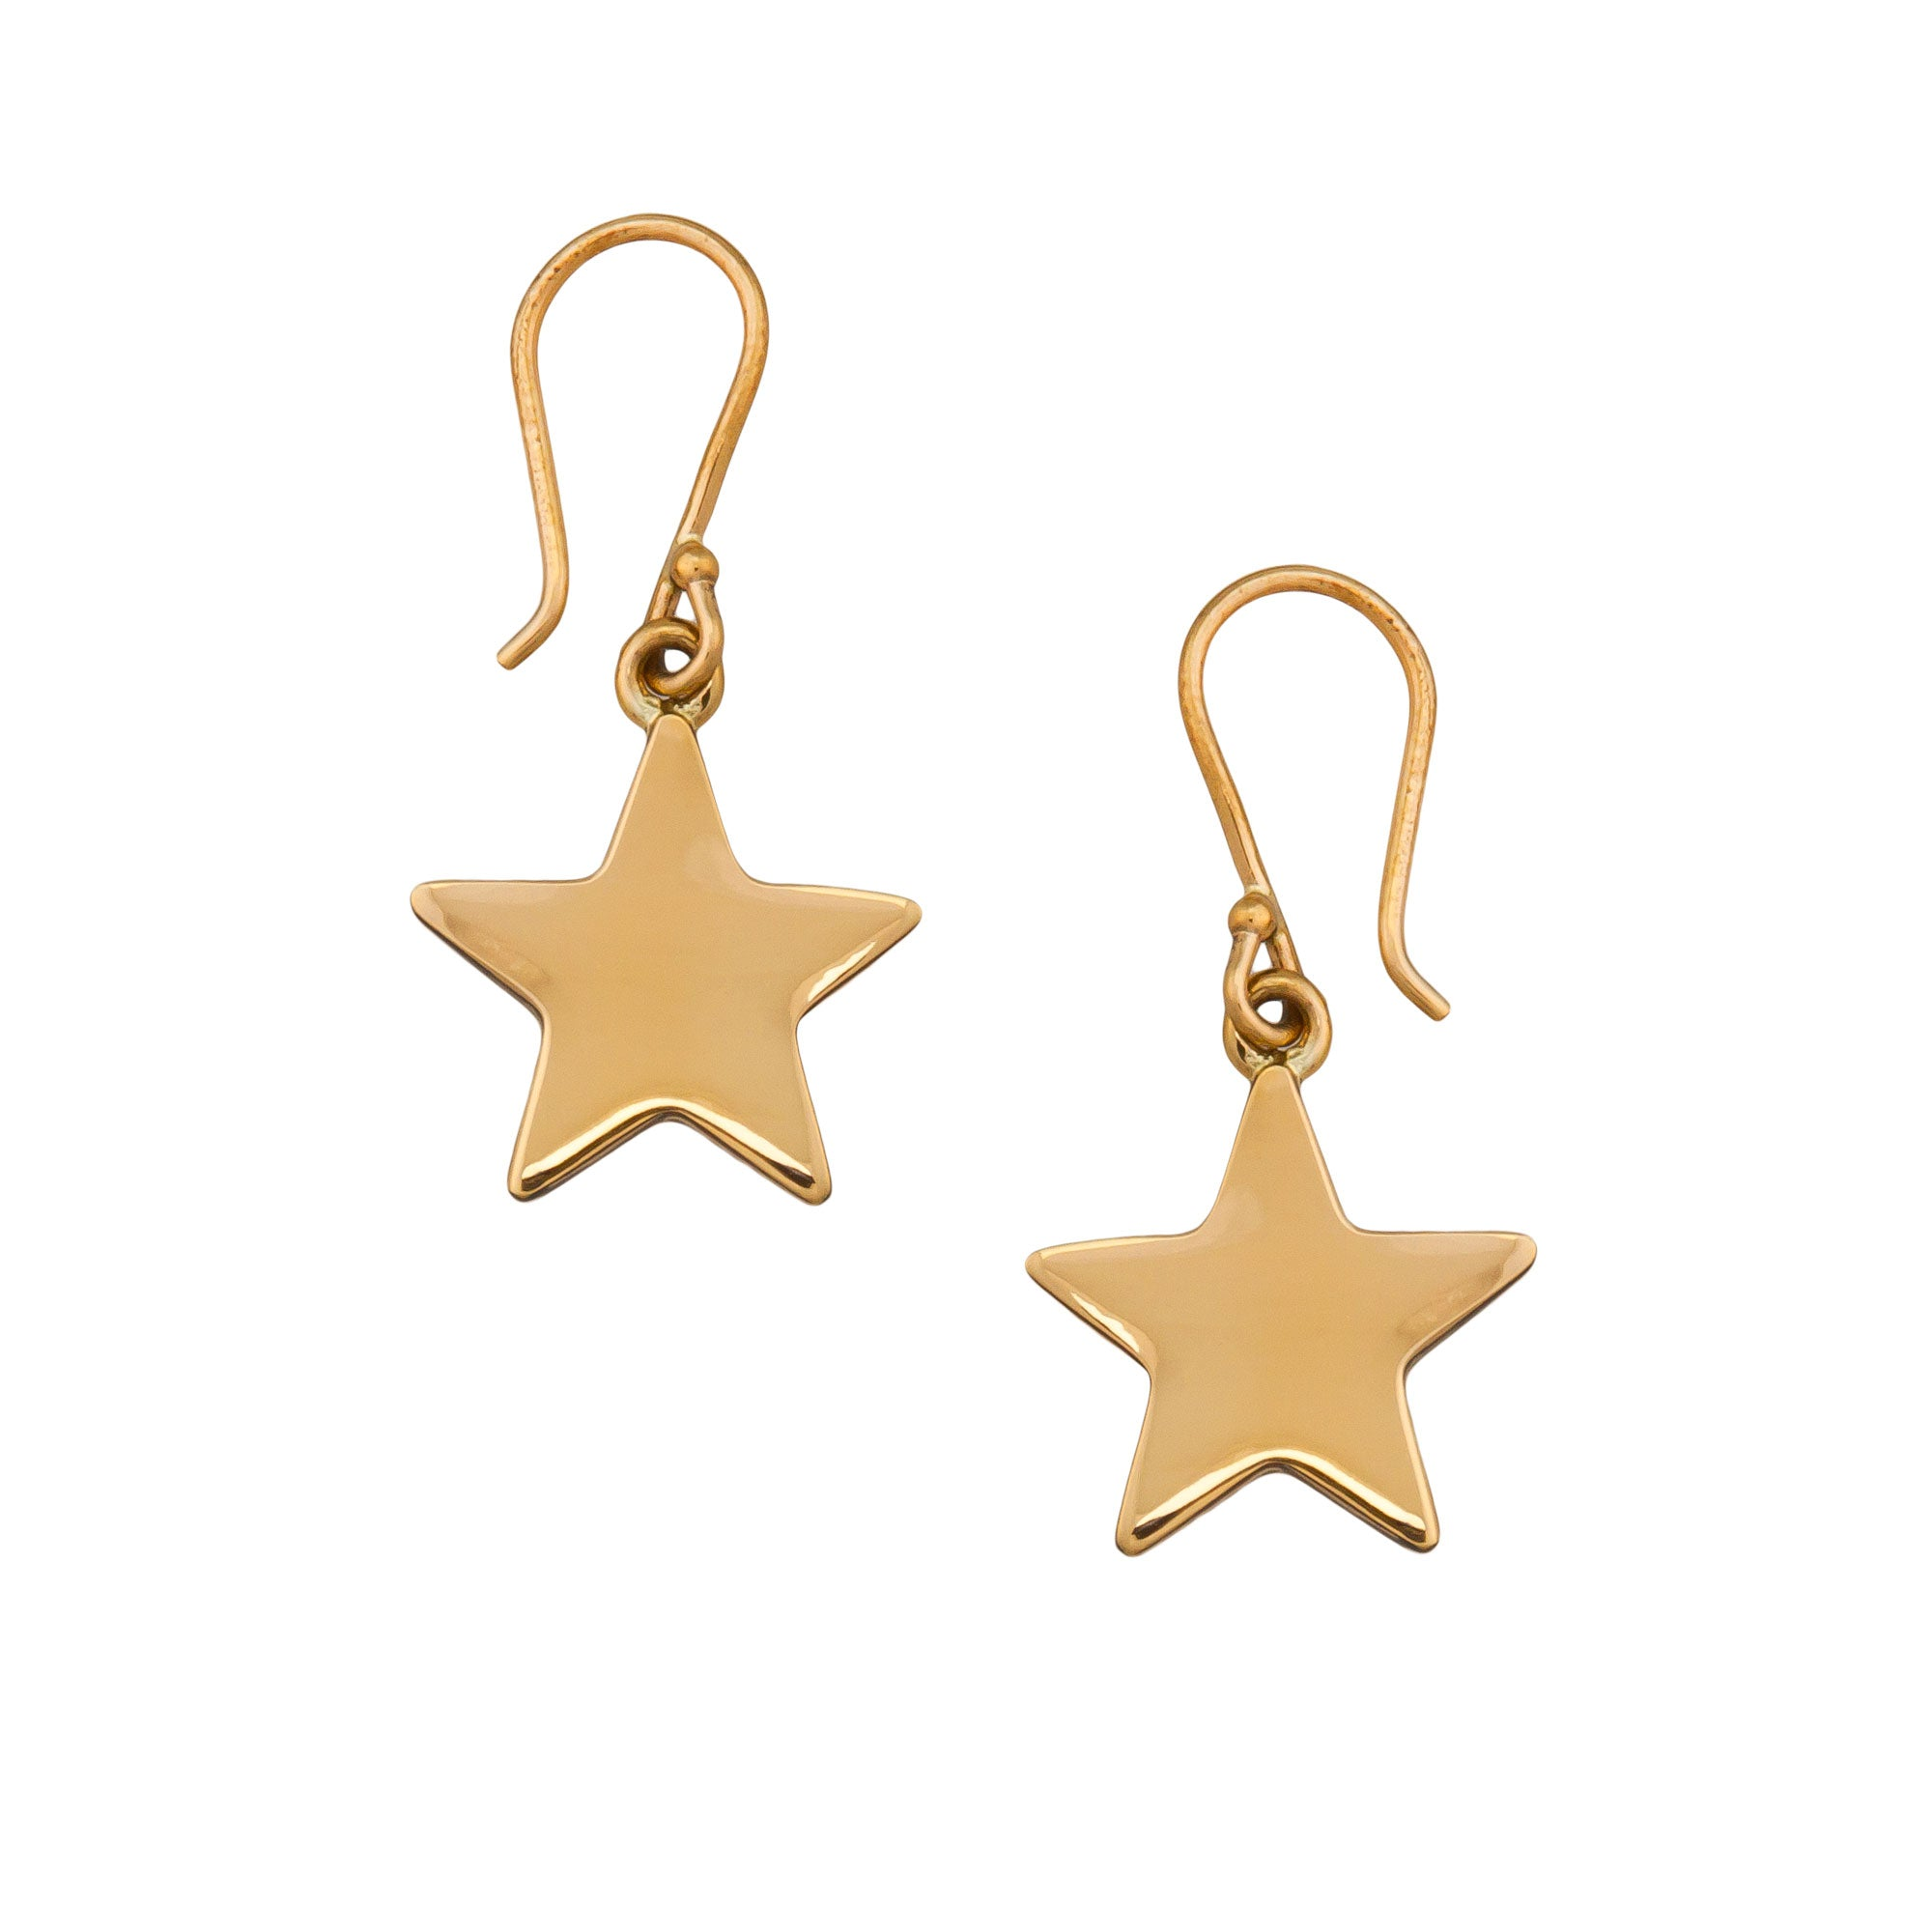 Alchemia Star Drop Earrings | Charles Albert Jewelry